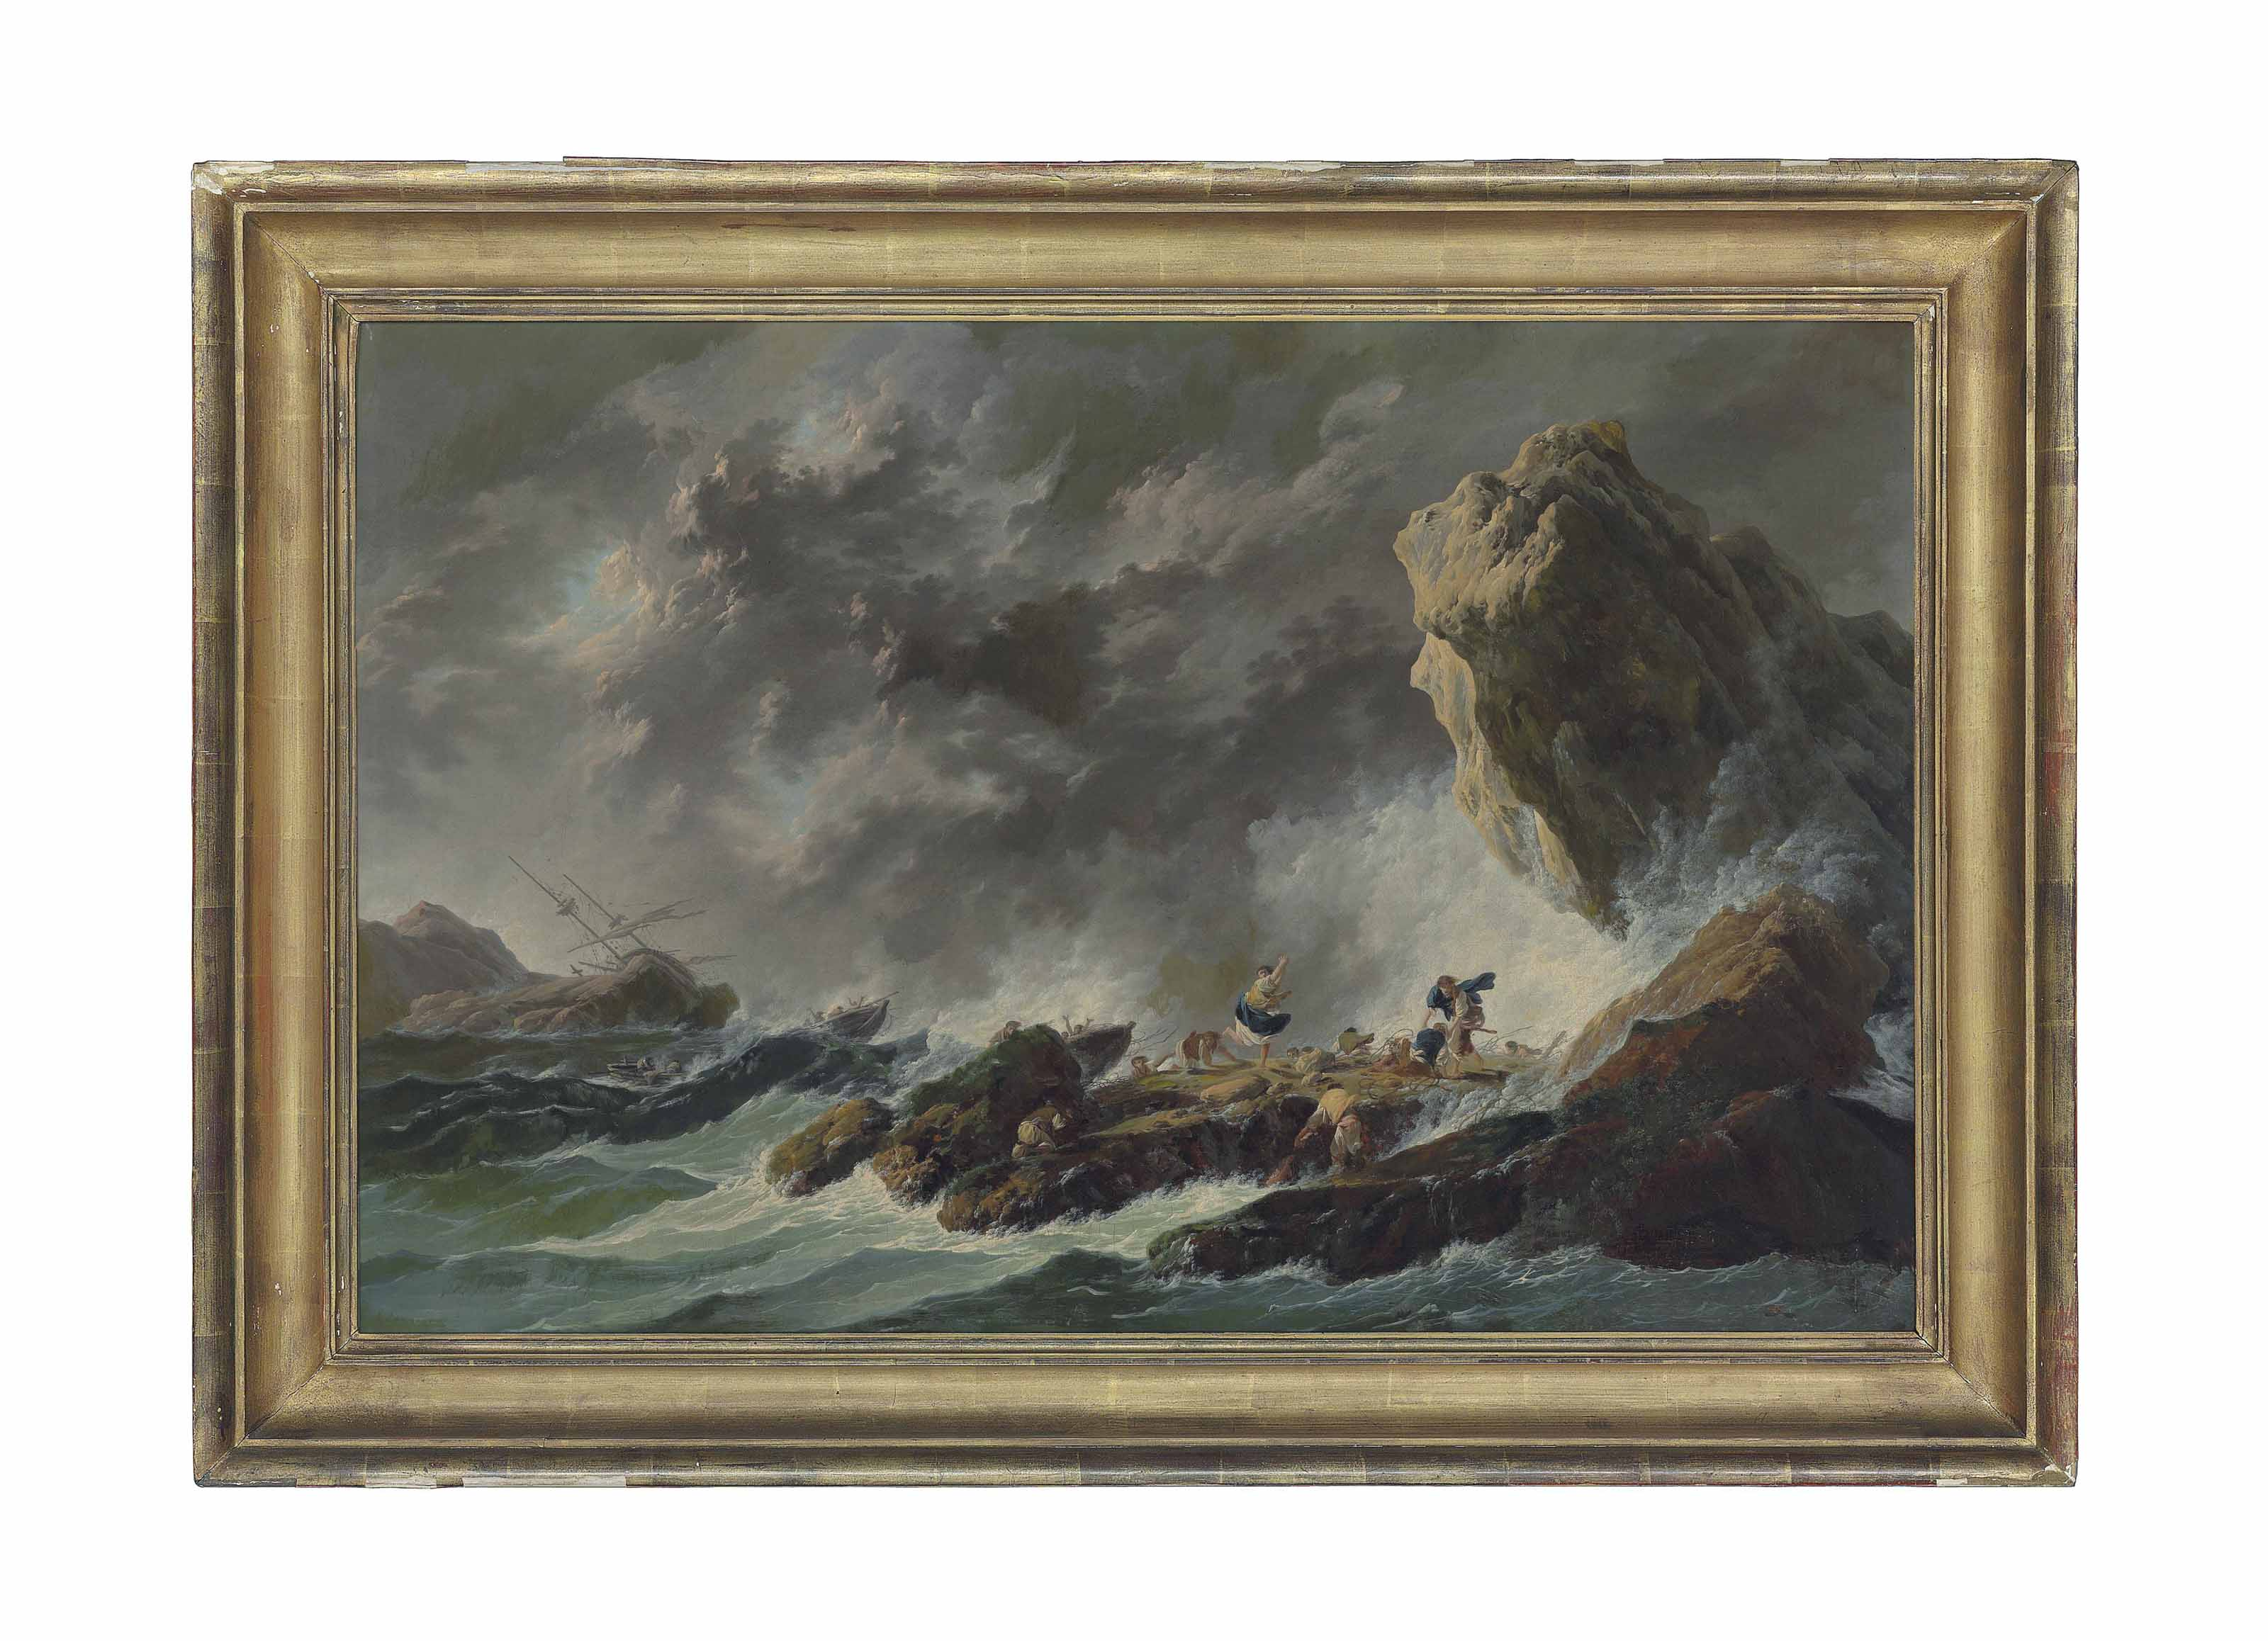 A rocky coastal landscape with a shipwreck in a storm and figures on the shore